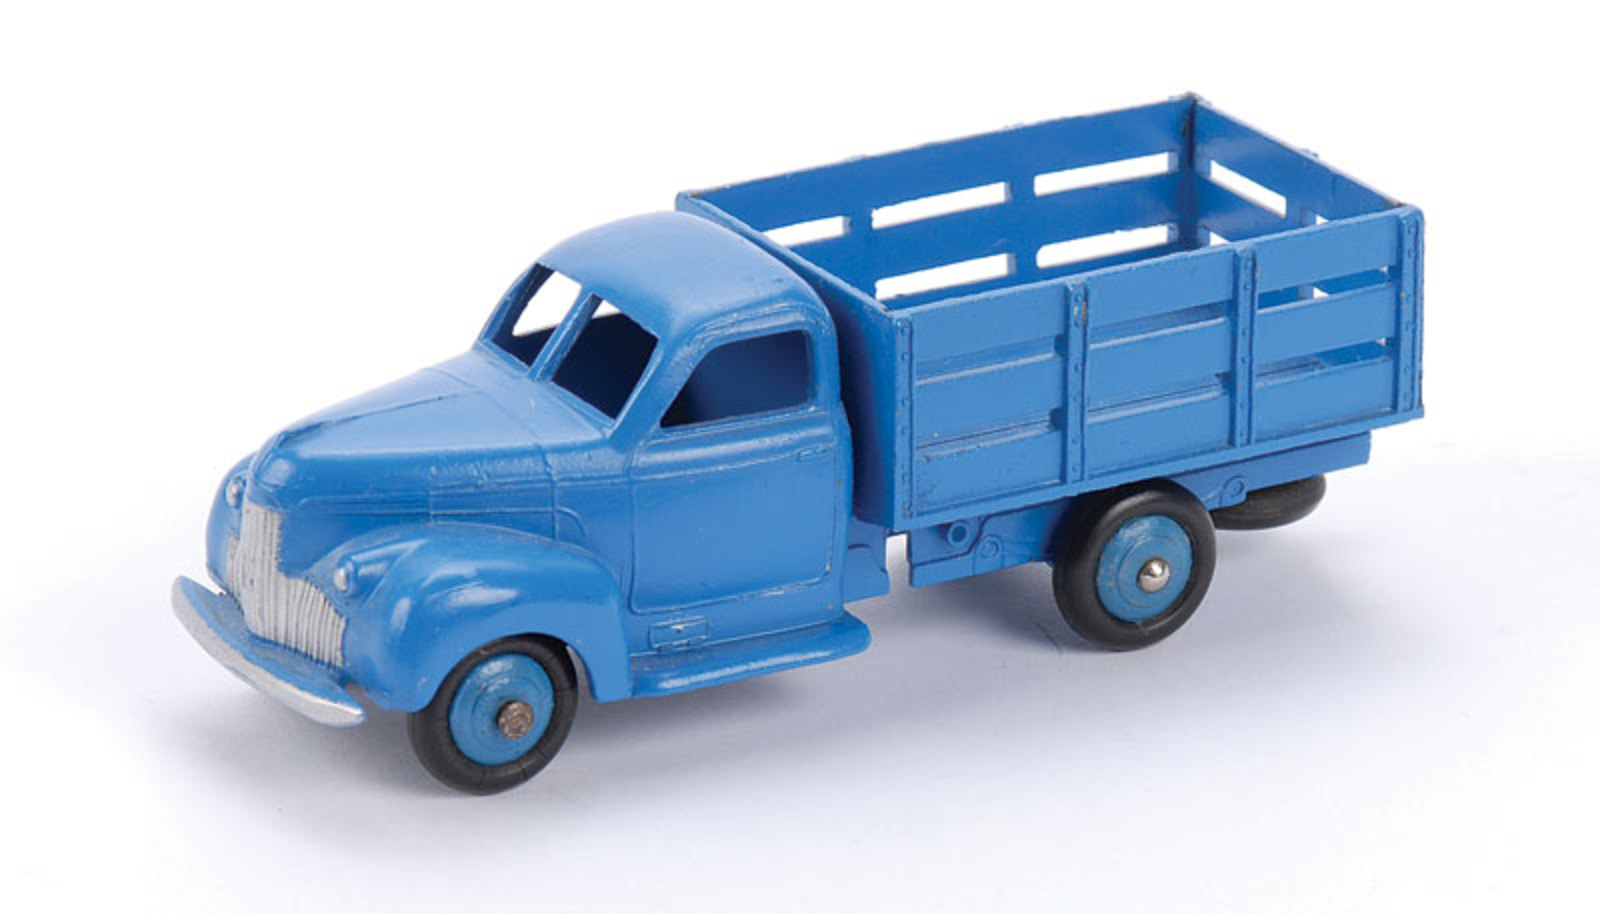 Simply Dinky 15 | The Swedish Collection | Vectis Toy Auctions